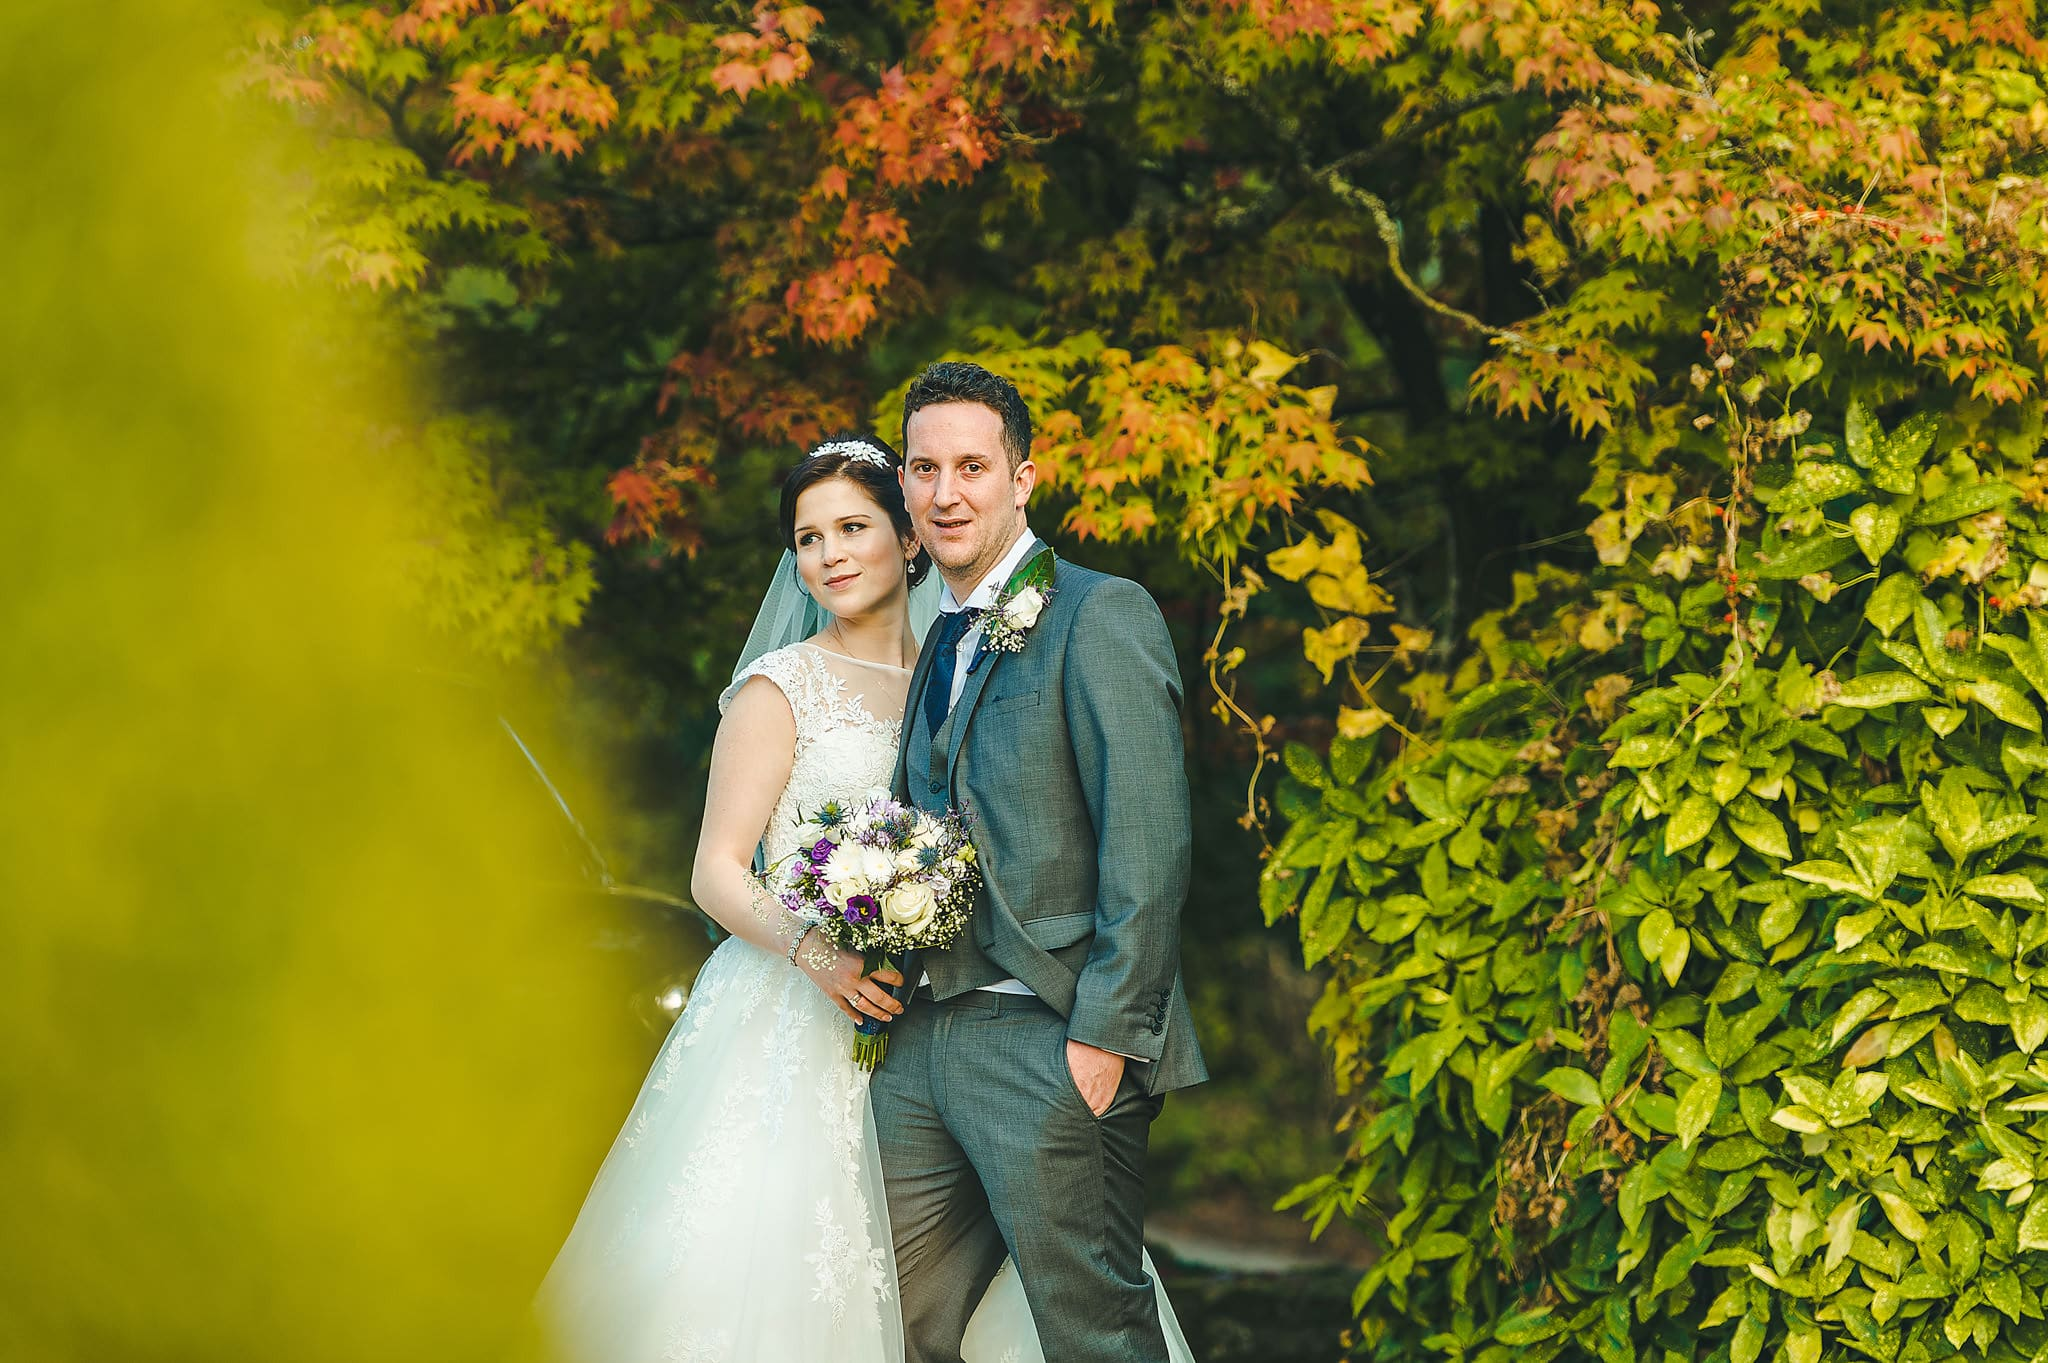 wedding photography midlands 35 - Midlands wedding photography - 2015 Review